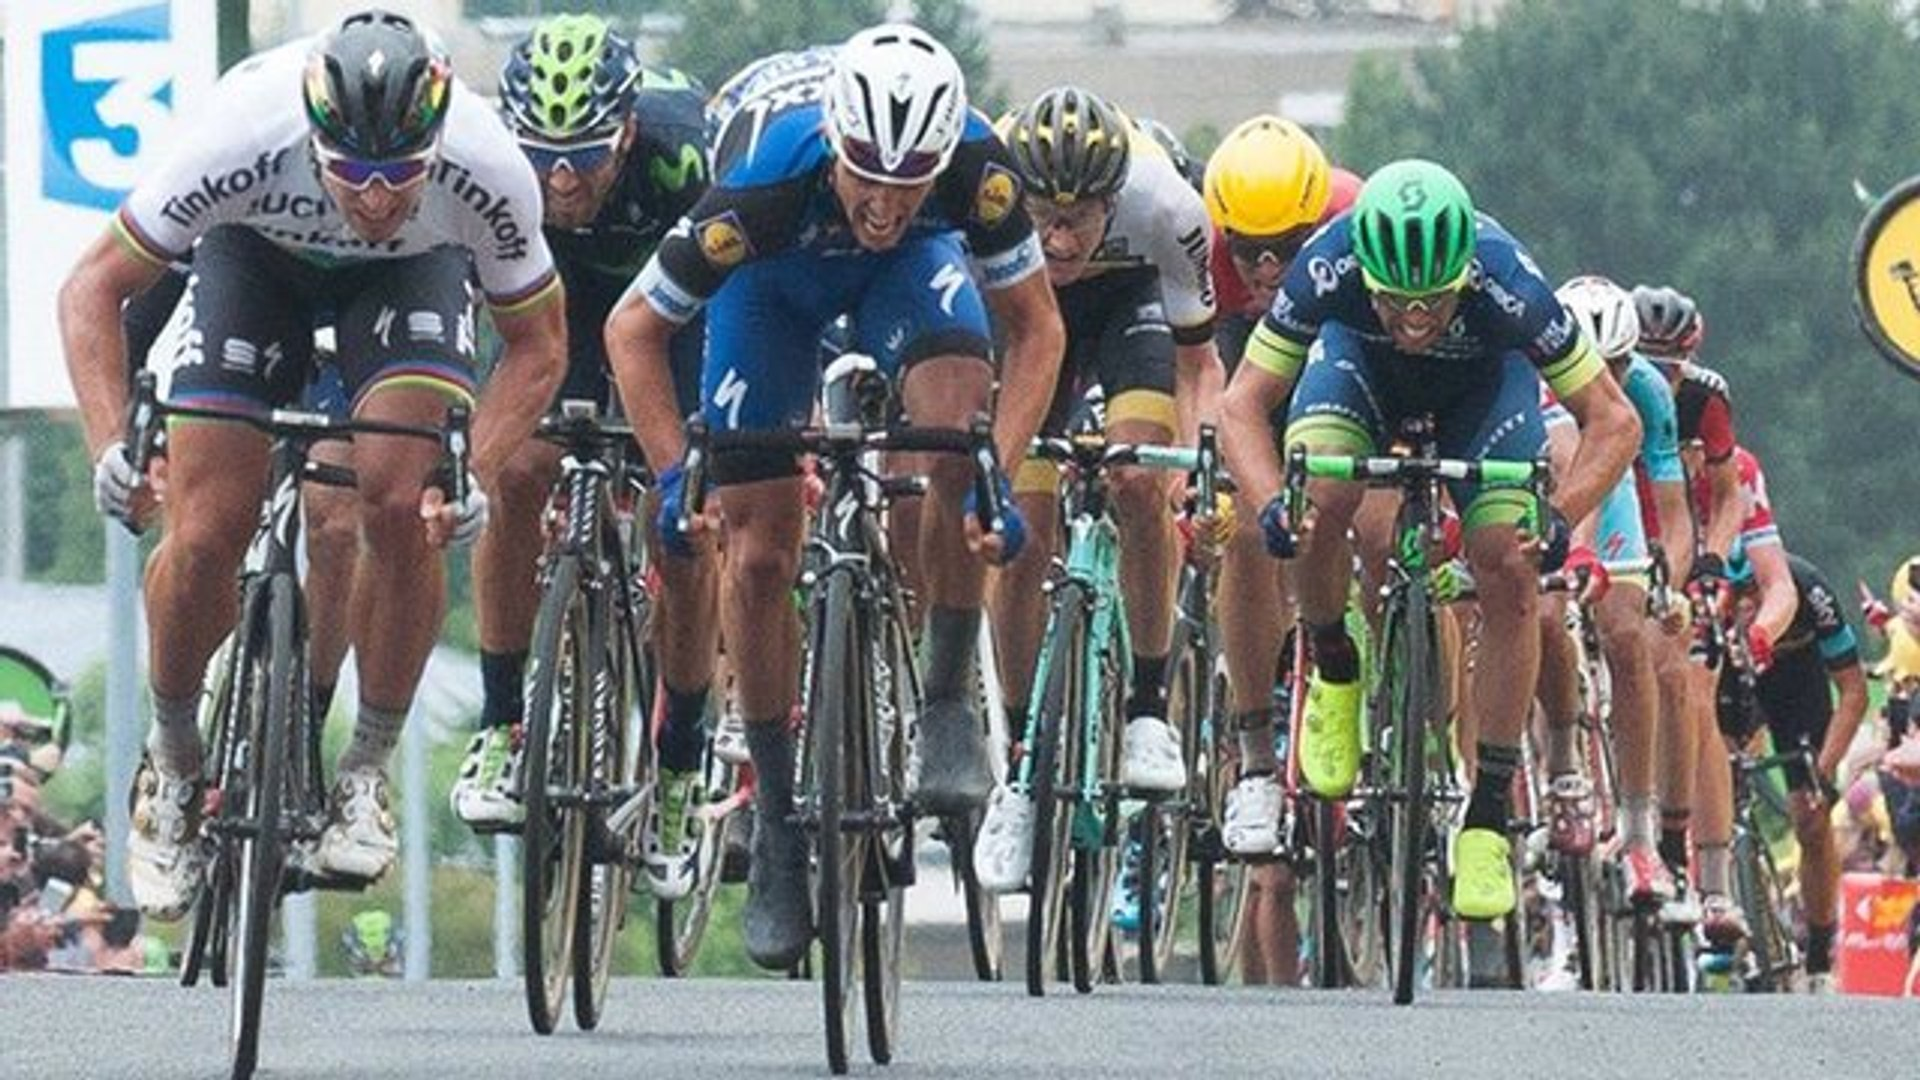 Tour de France 2016 day two: Peter Sagan takes yellow jersey – video highlights